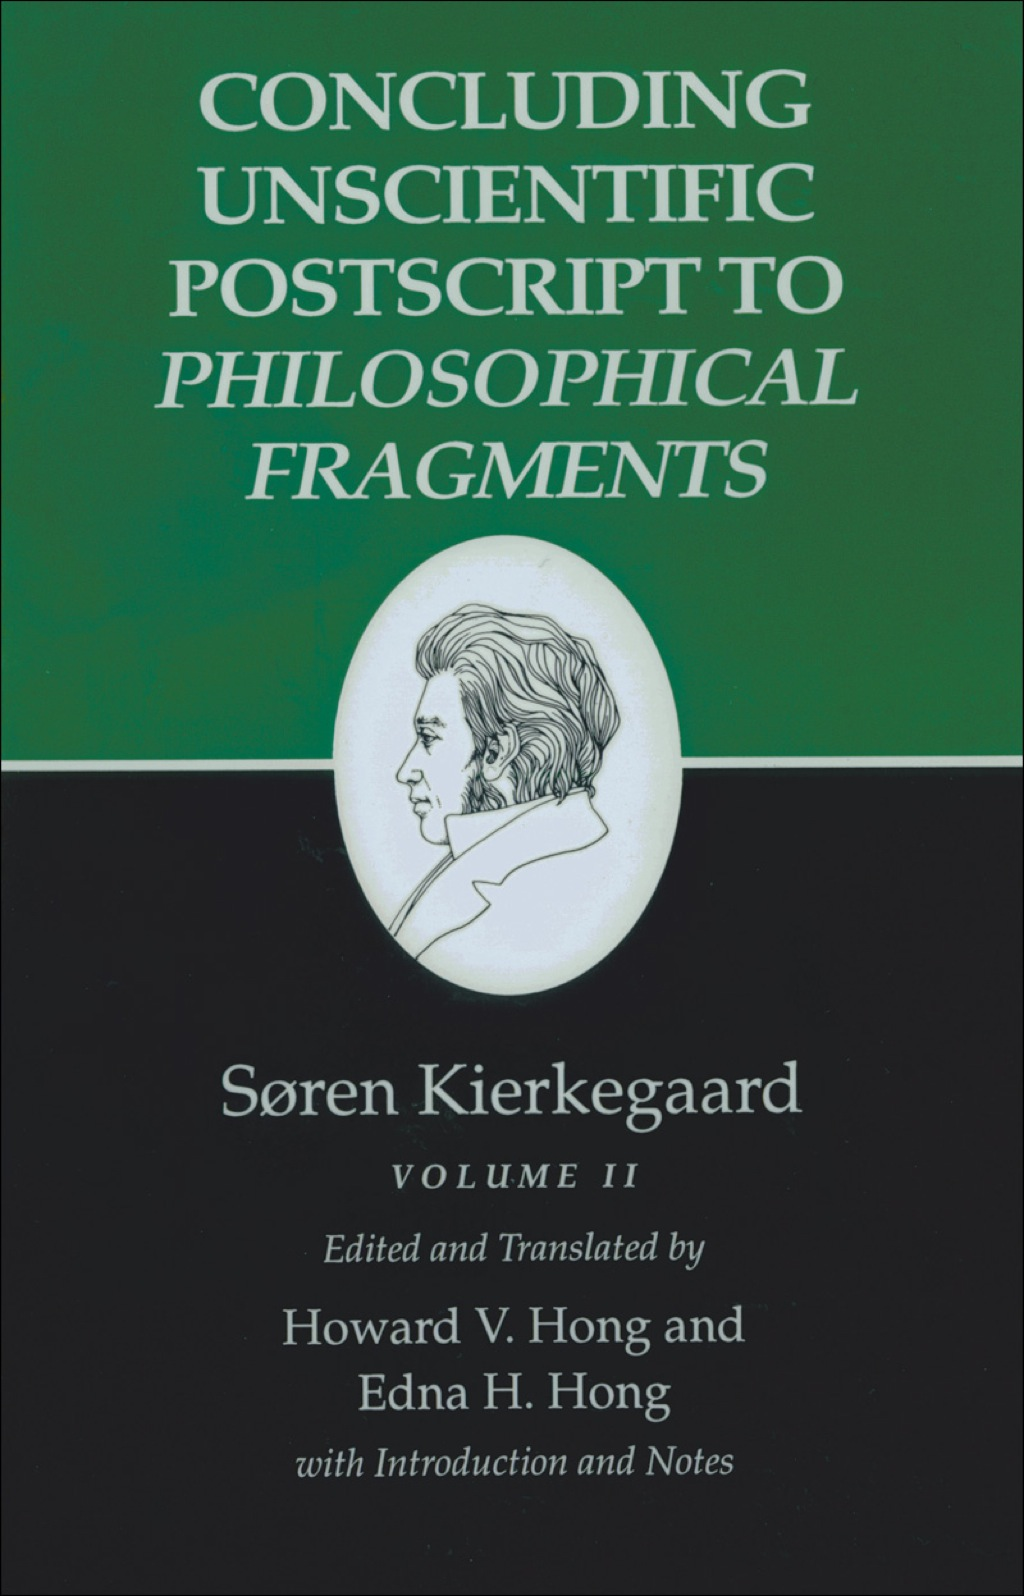 Kierkegaard's Writings, XII, Volume II: Concluding Unscientific Postscript to Philosophical Fragments (ebook) eBooks